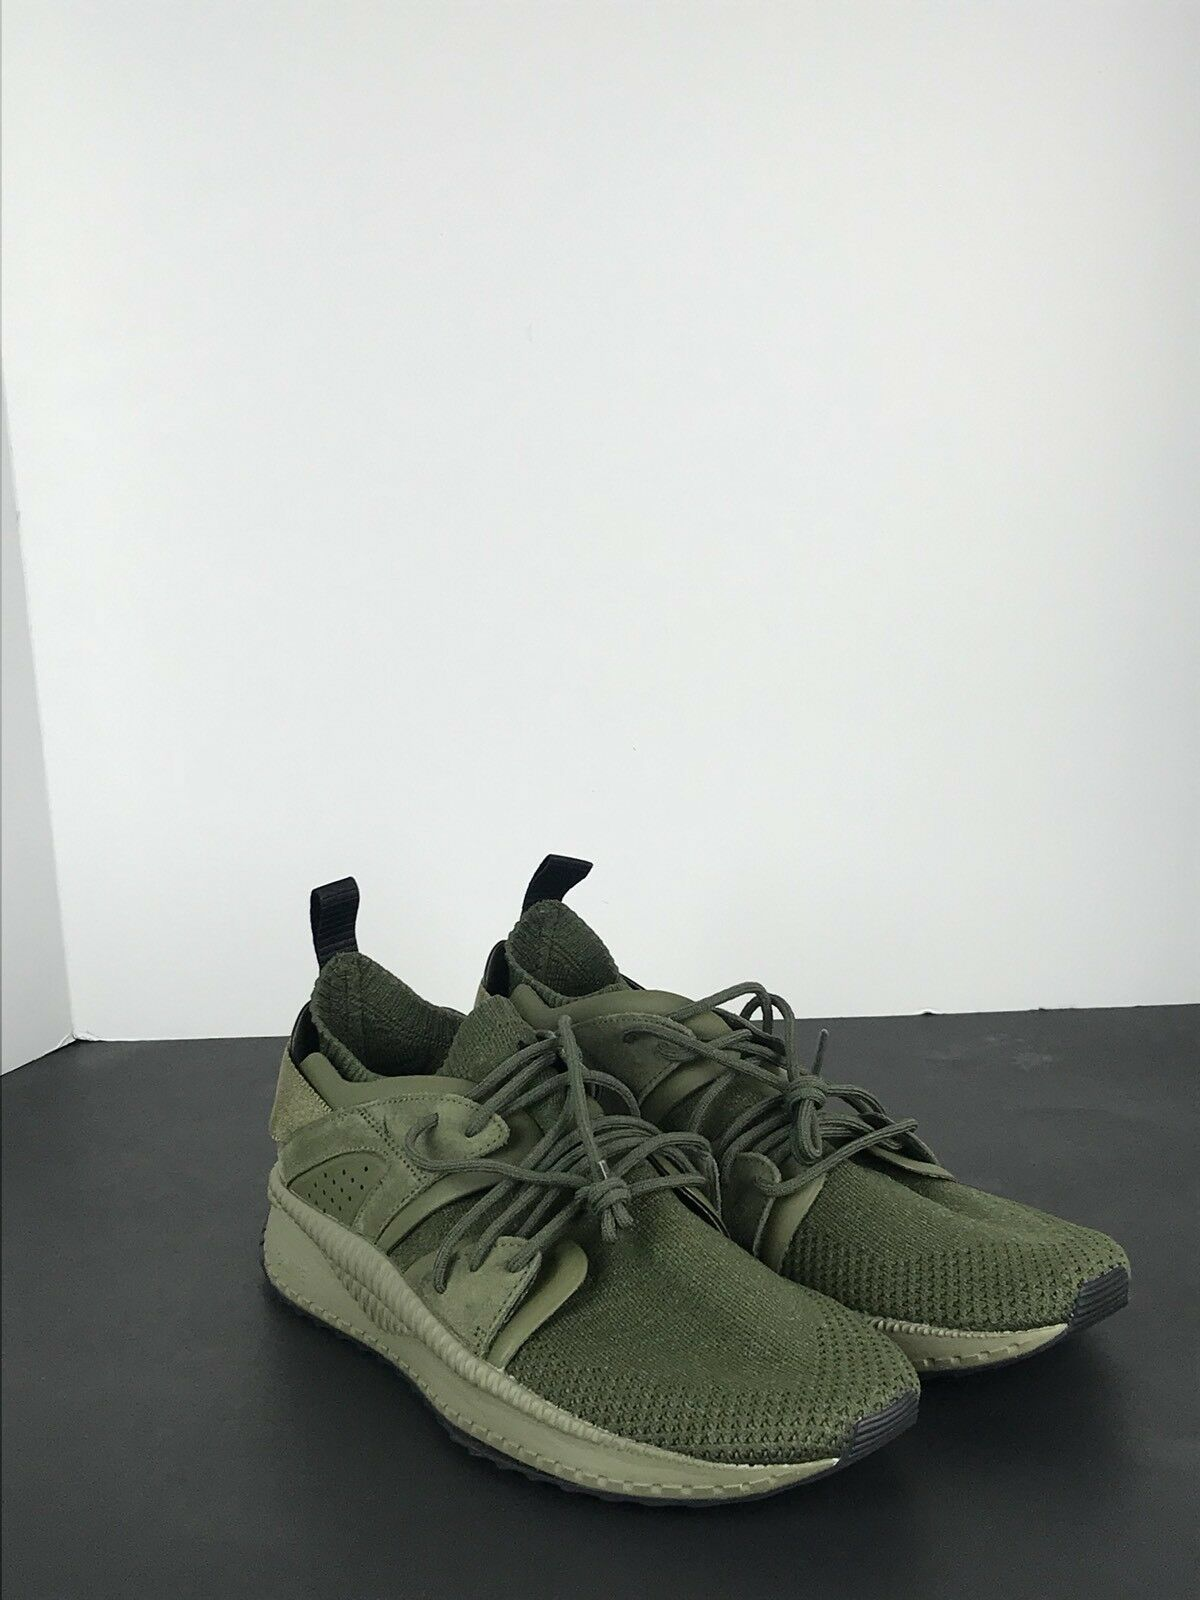 Puma Tsugi Blaze Evoknit in Olive Night/Falcon 364408-03 Comfortable